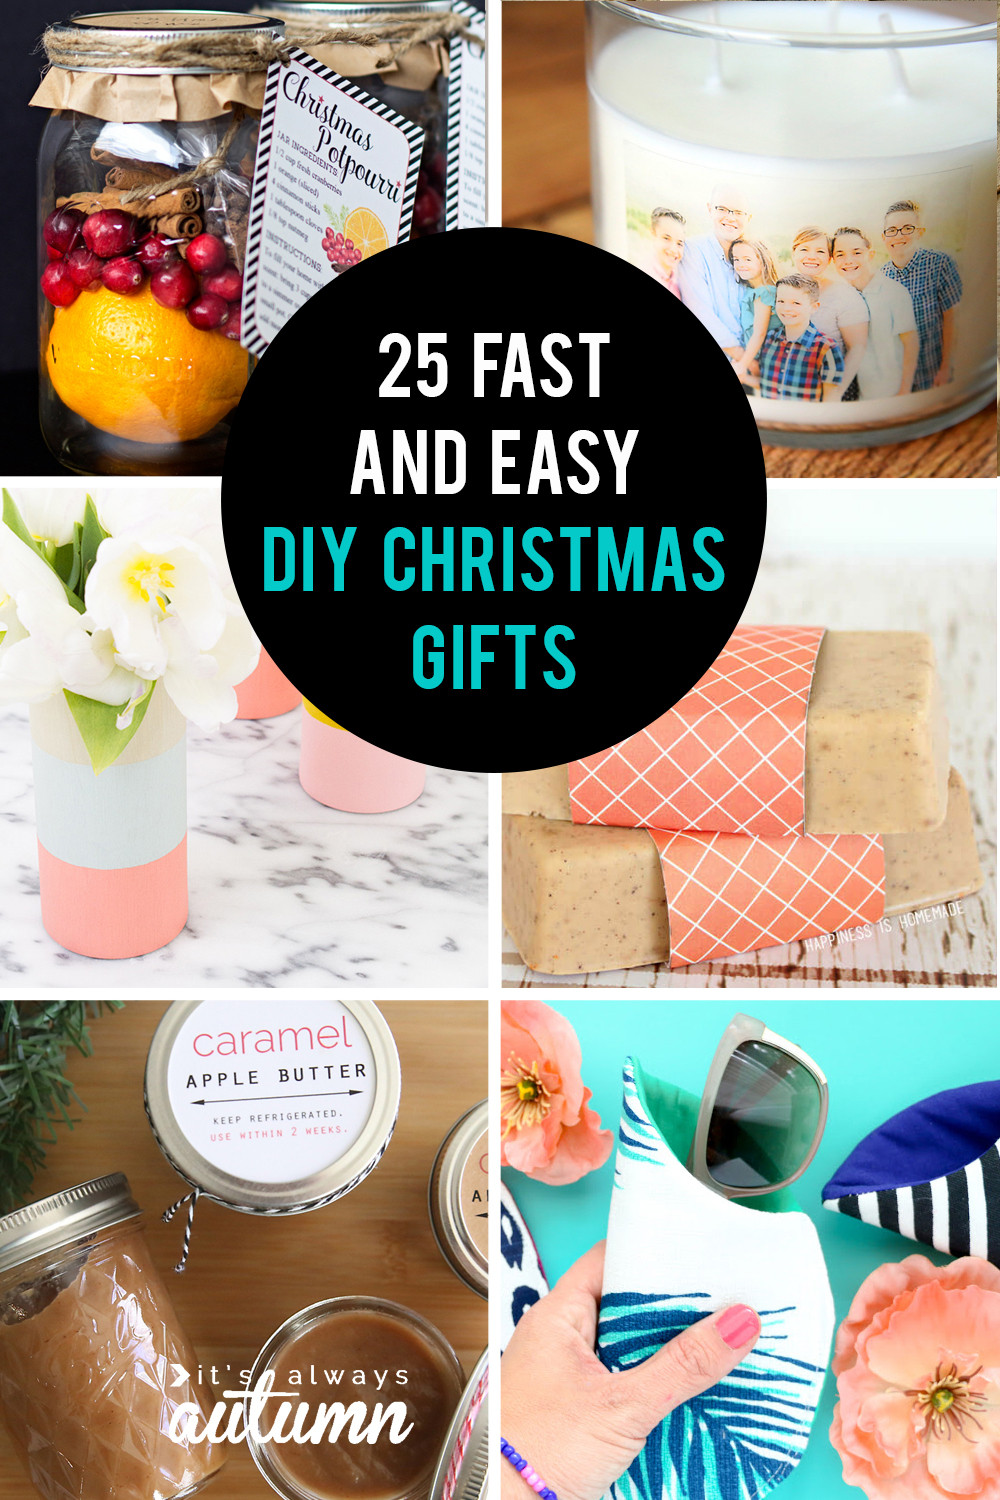 Best ideas about DIY Gift For Christmas . Save or Pin 25 easy homemade Christmas ts you can make in 15 Now.